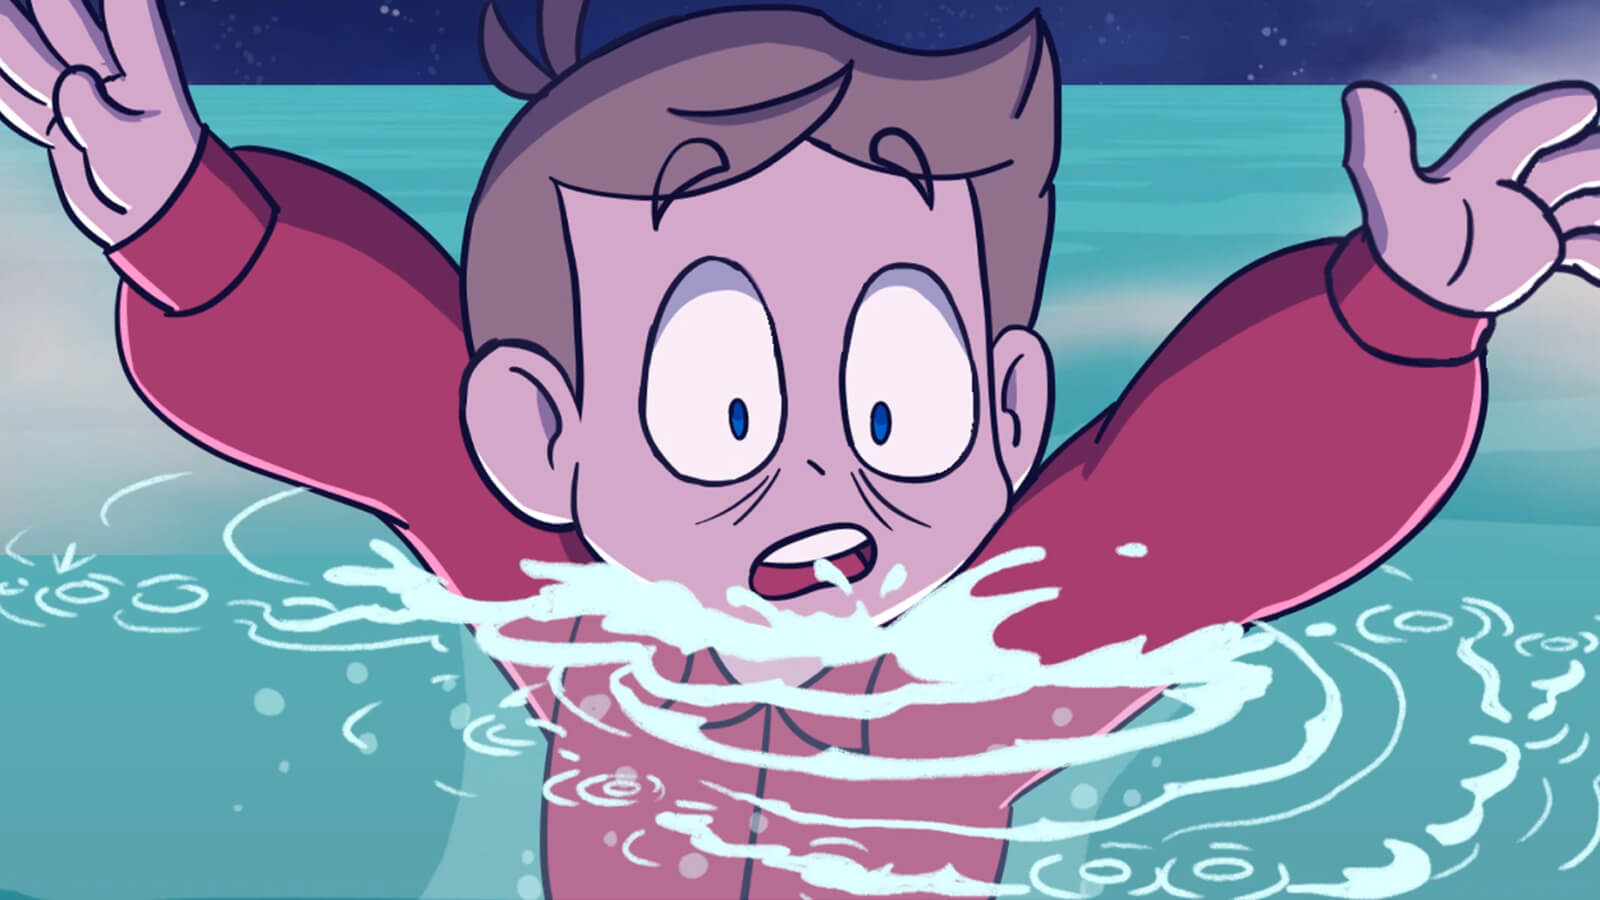 A startled boy sinks beneath the surface of the ocean.